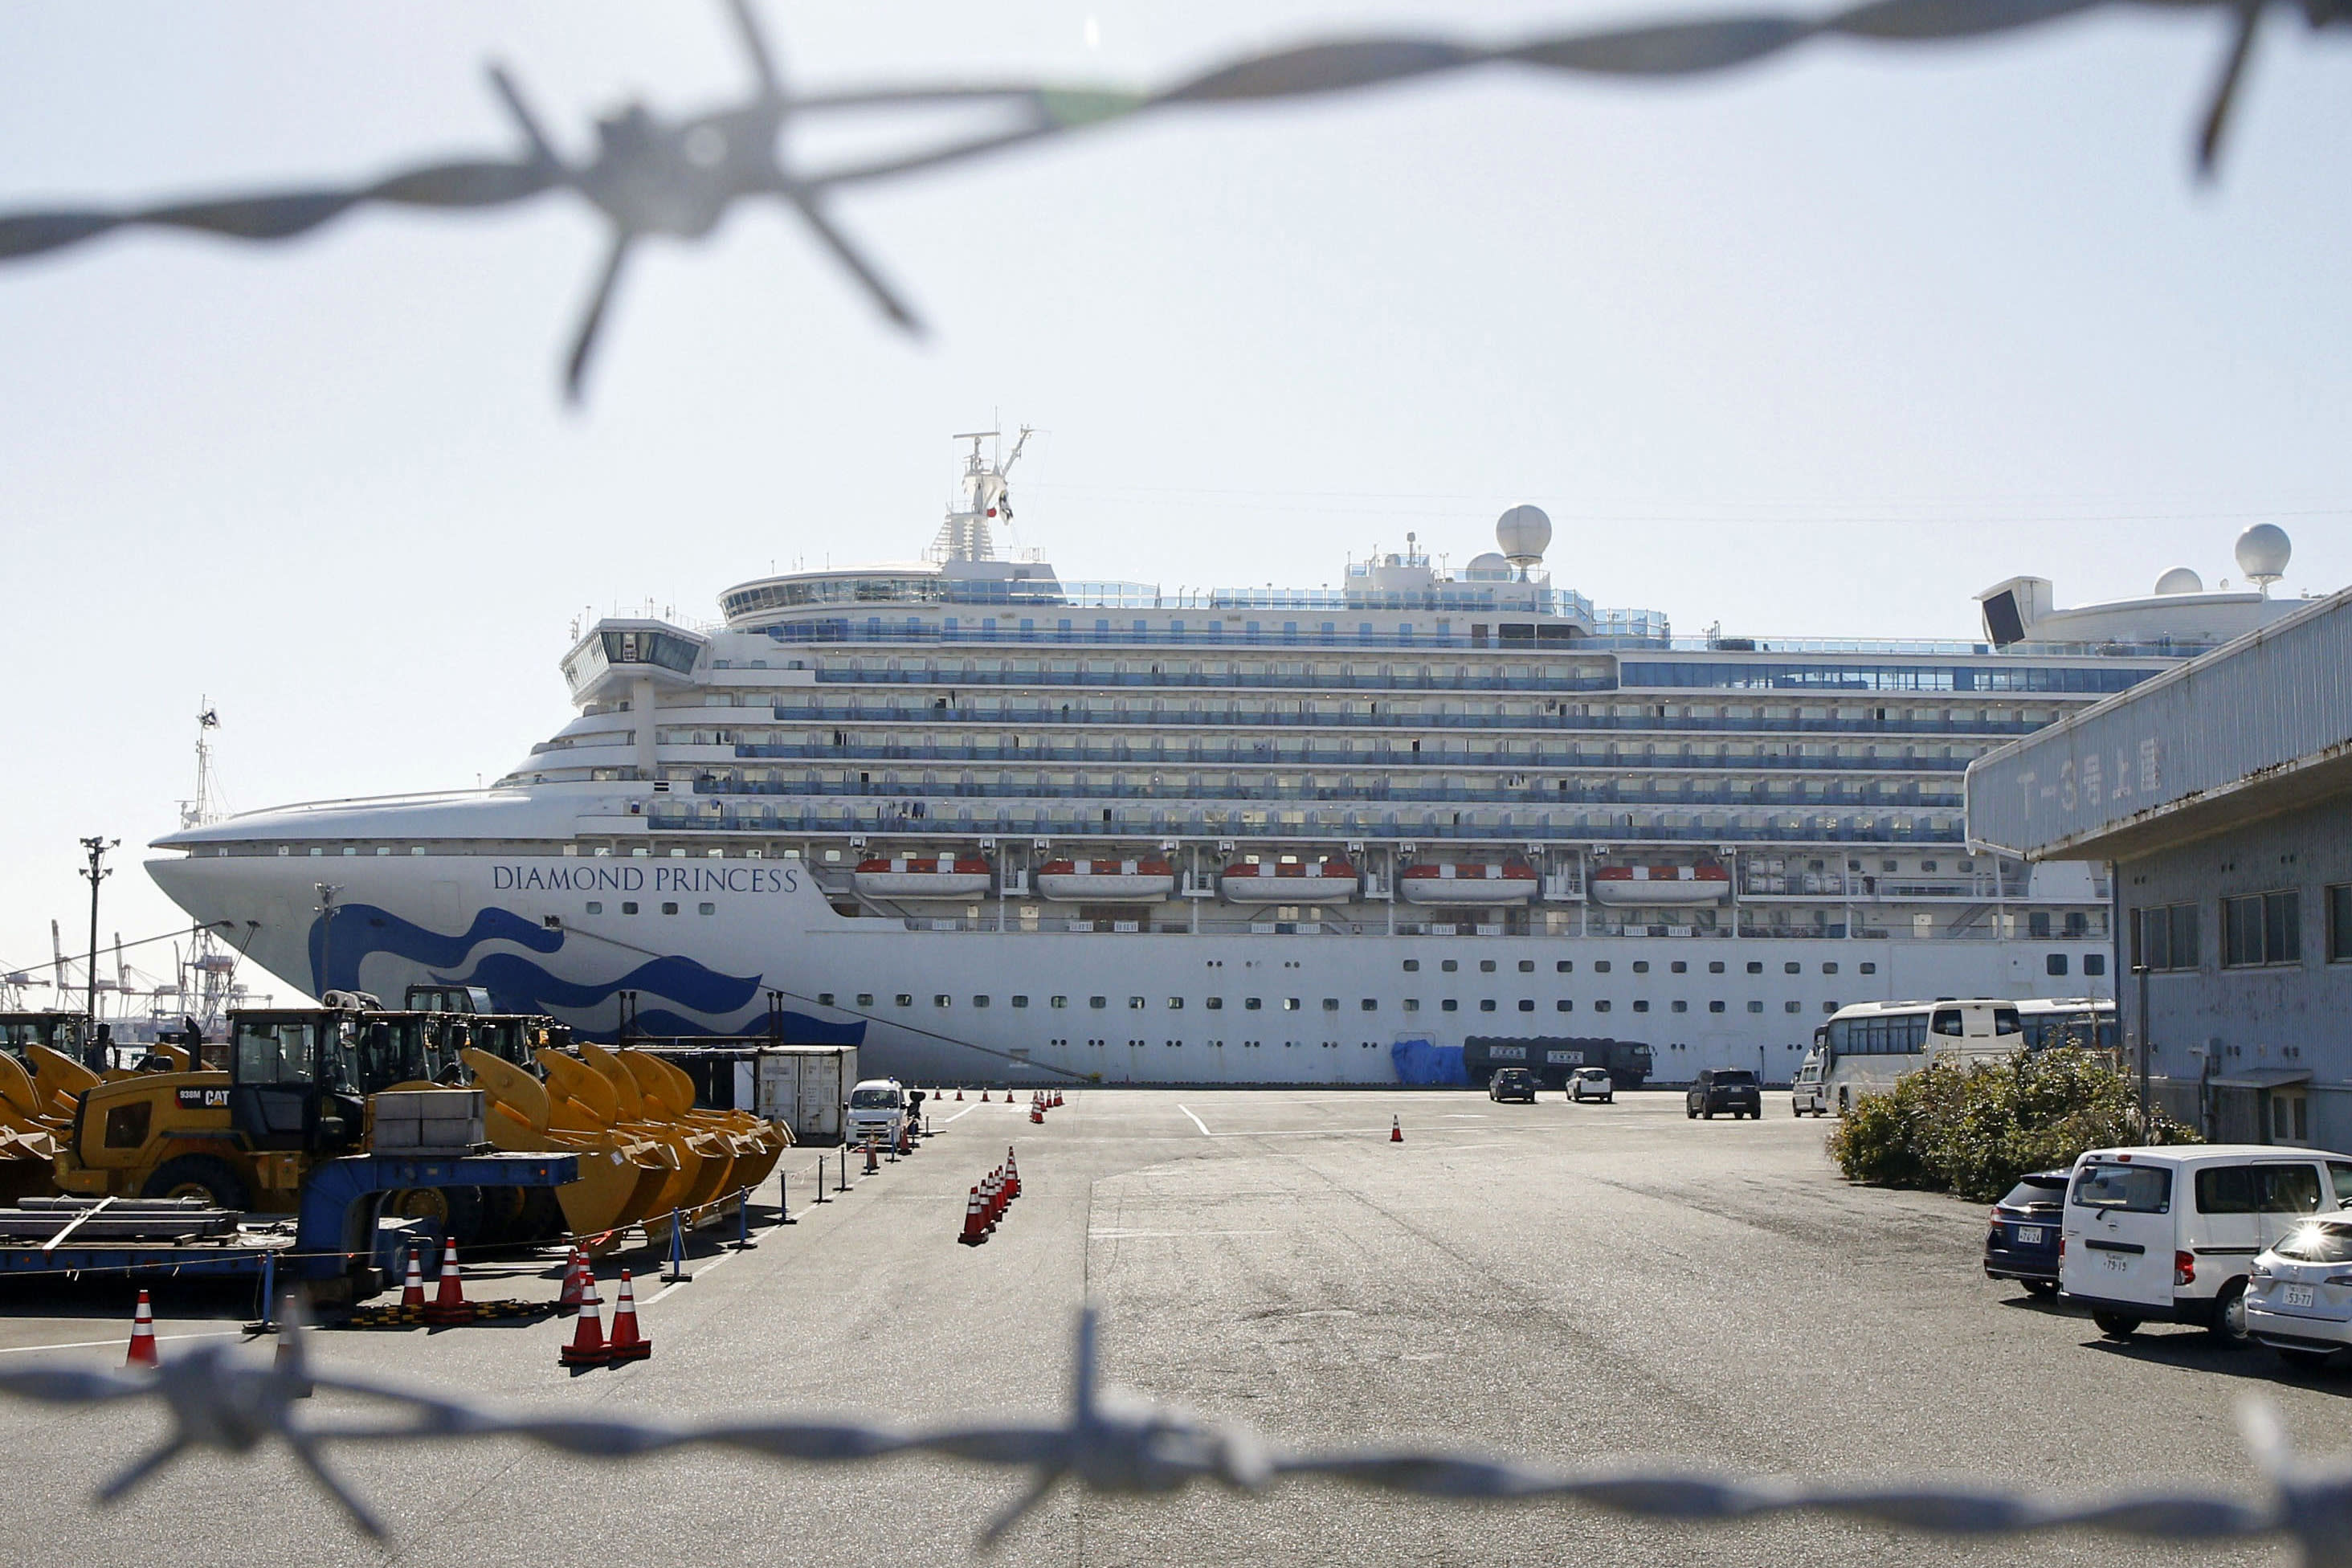 Why have there been so many coronavirus cases on cruise ships?